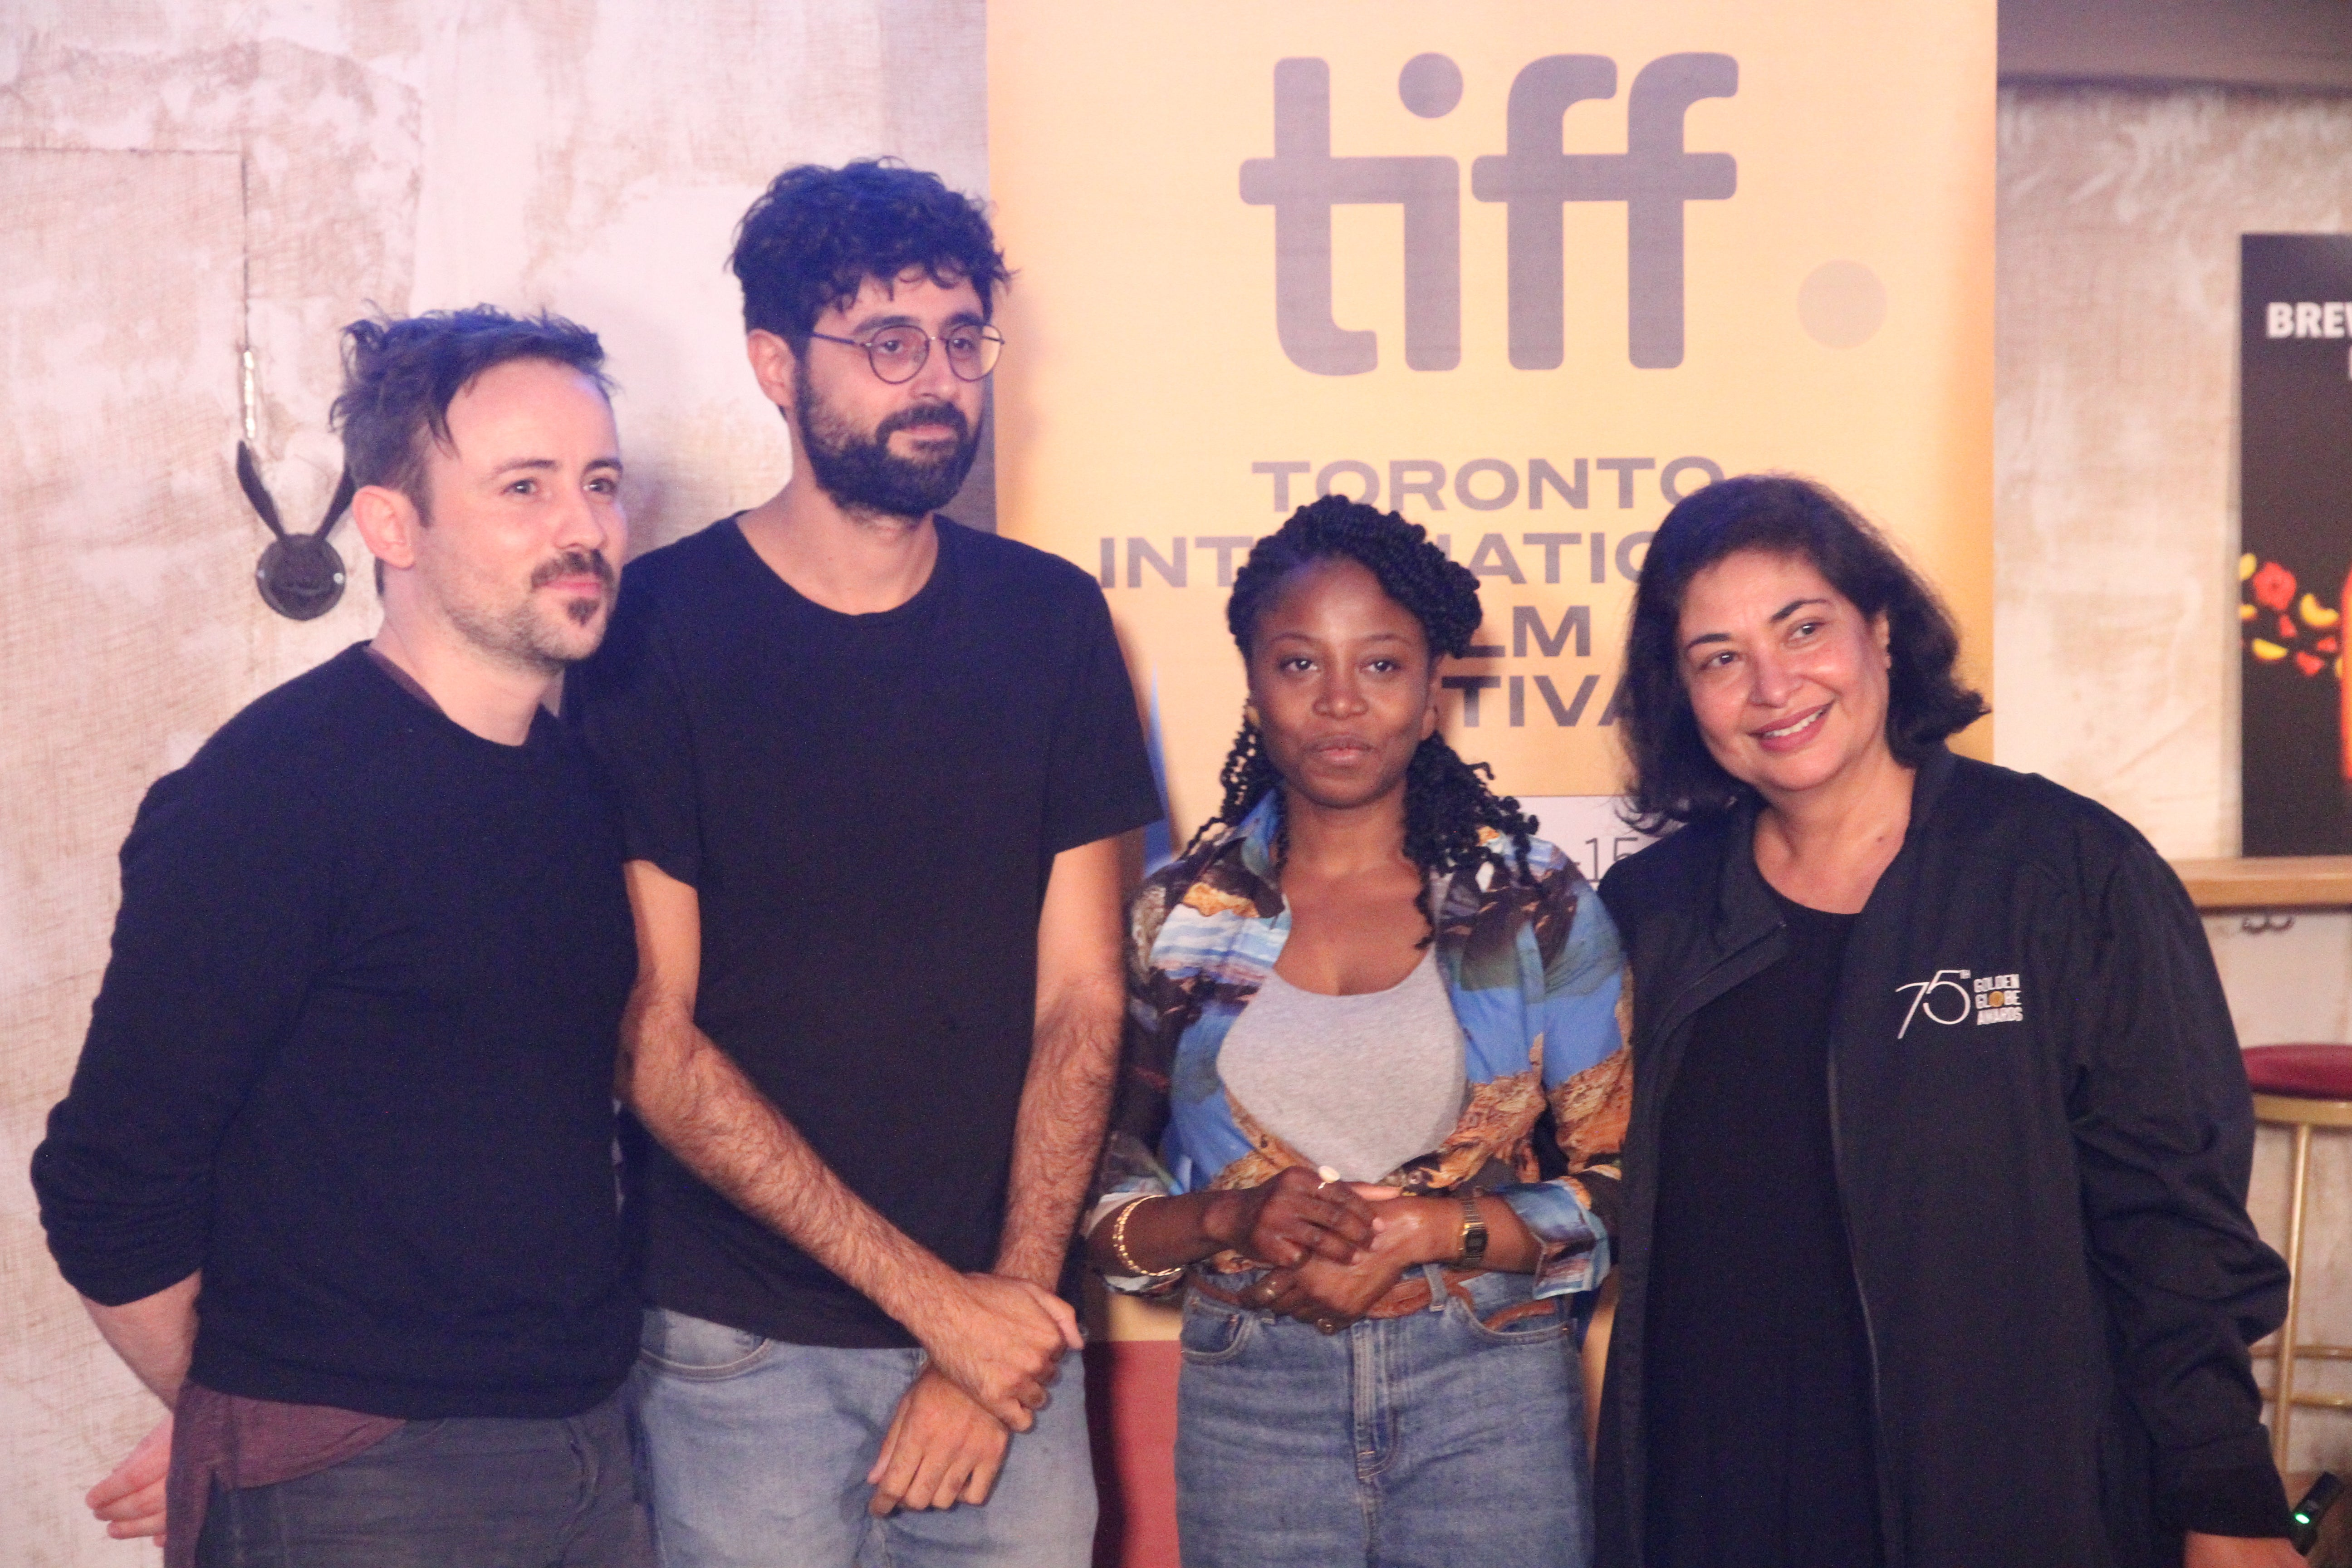 2020_hfpa_residency_winners_charles_williams_chema_garcia_and_karen_chapman_react_to_the_announcement_at_tiff_ceremony